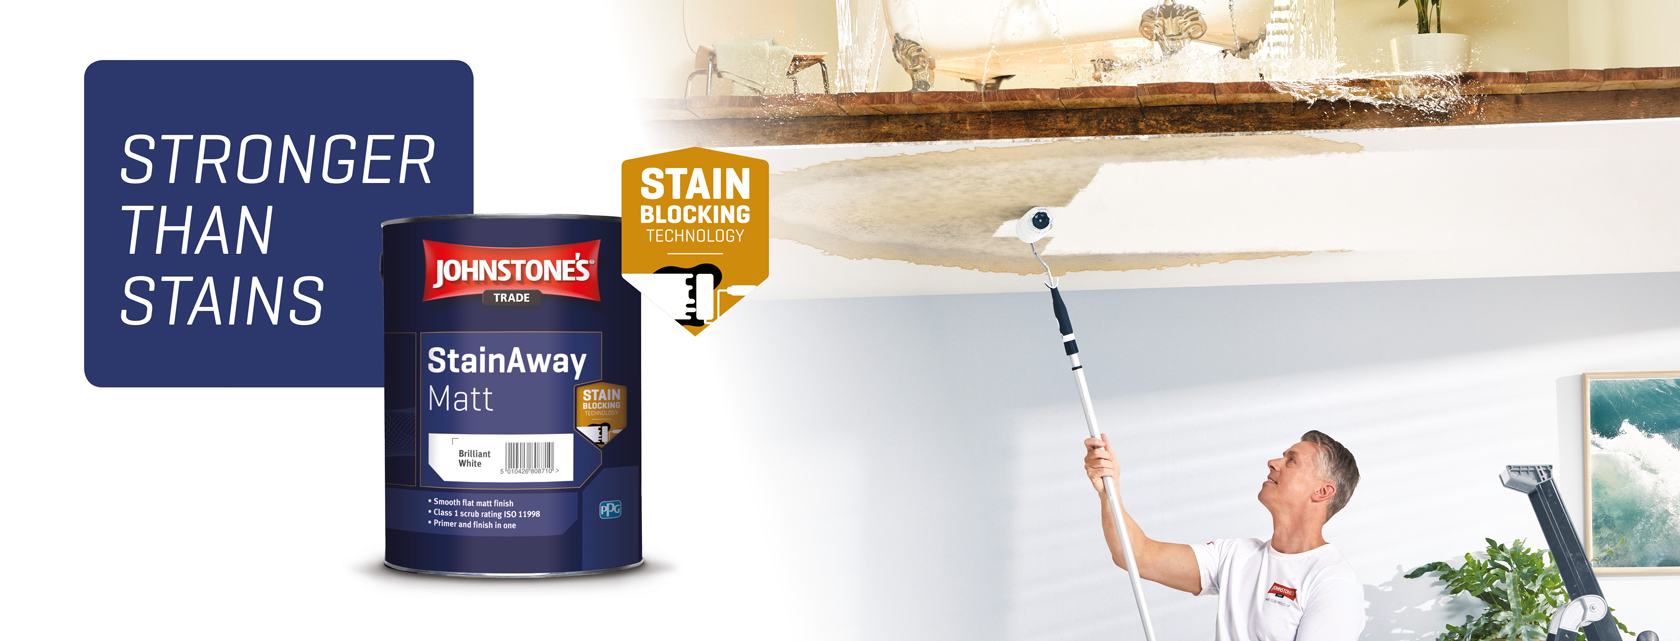 Johnstone's Trade StainAway: Our New Stain Block Paint for